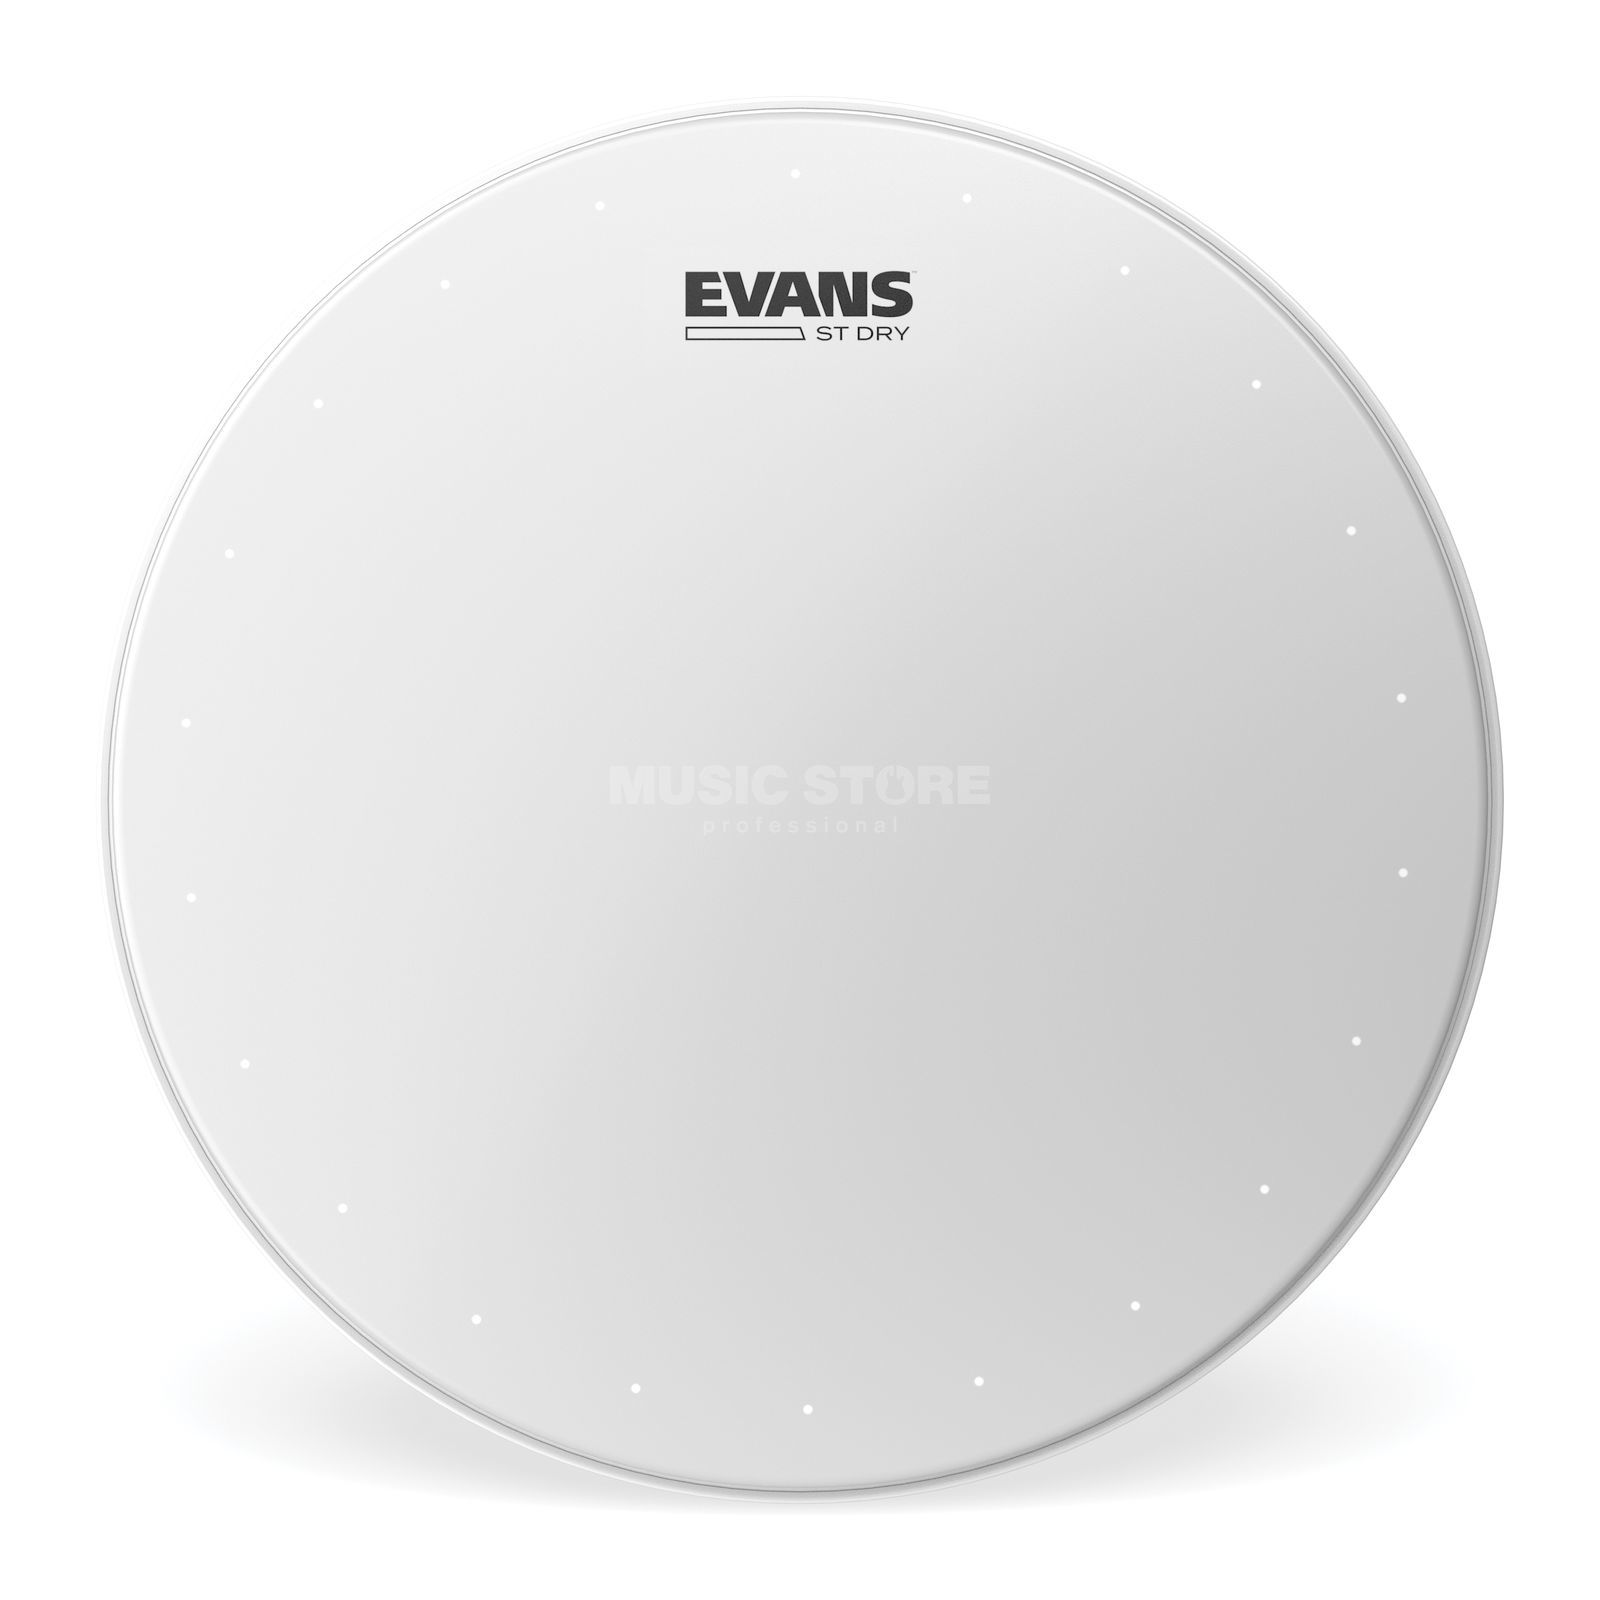 "Evans Super Tough DRY, B14STD, 14"", Snare Batter Product Image"